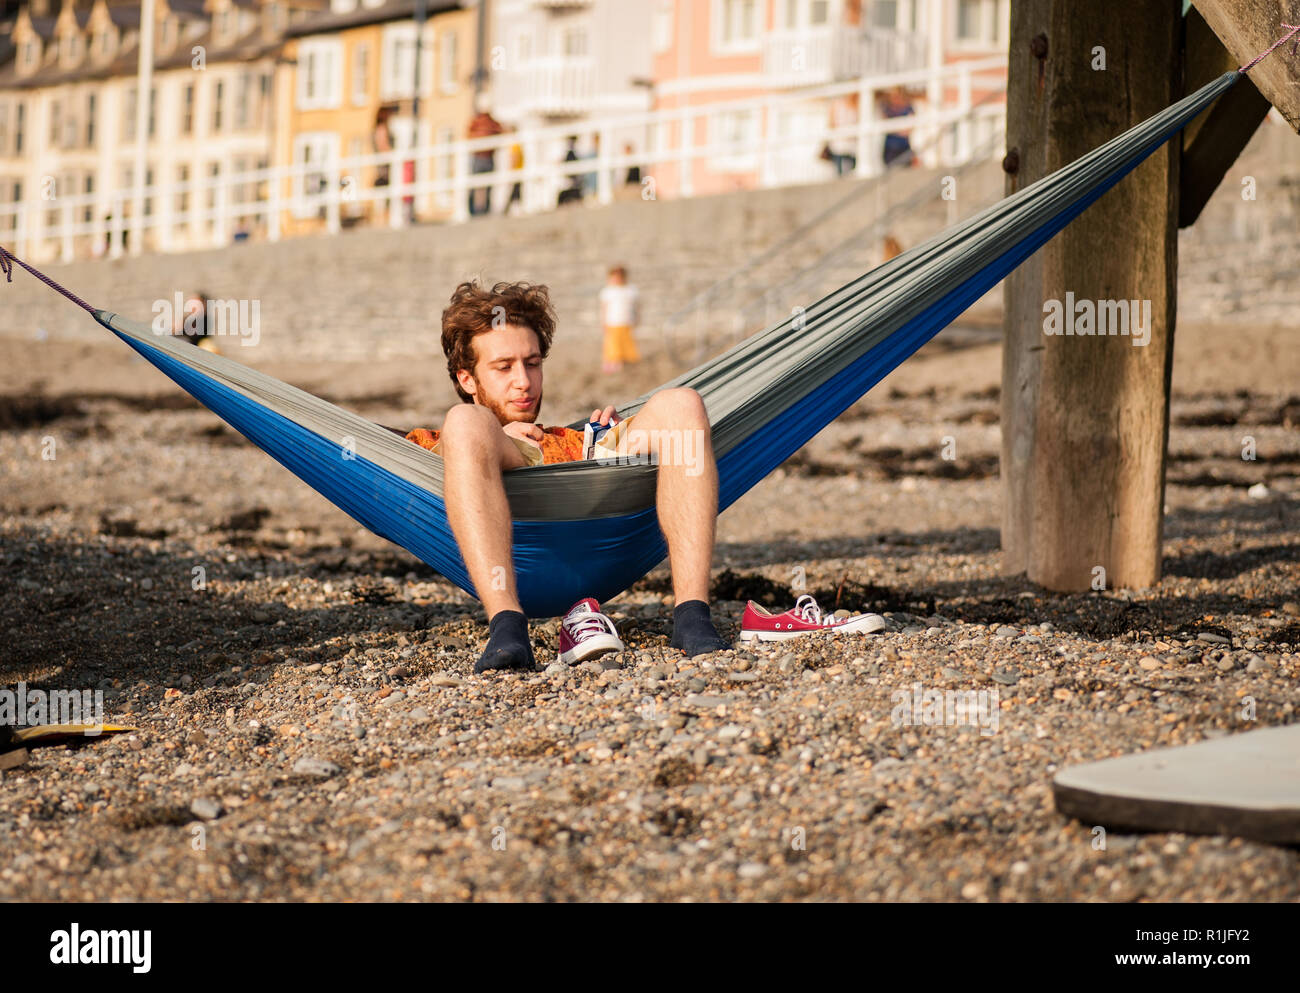 UK Weather: Aberystwyth, Ceredigion, West Wales Thursday 12th May 2016. The end to a lovely day with tempretures reaching 23 dergees. Students and loc - Stock Image